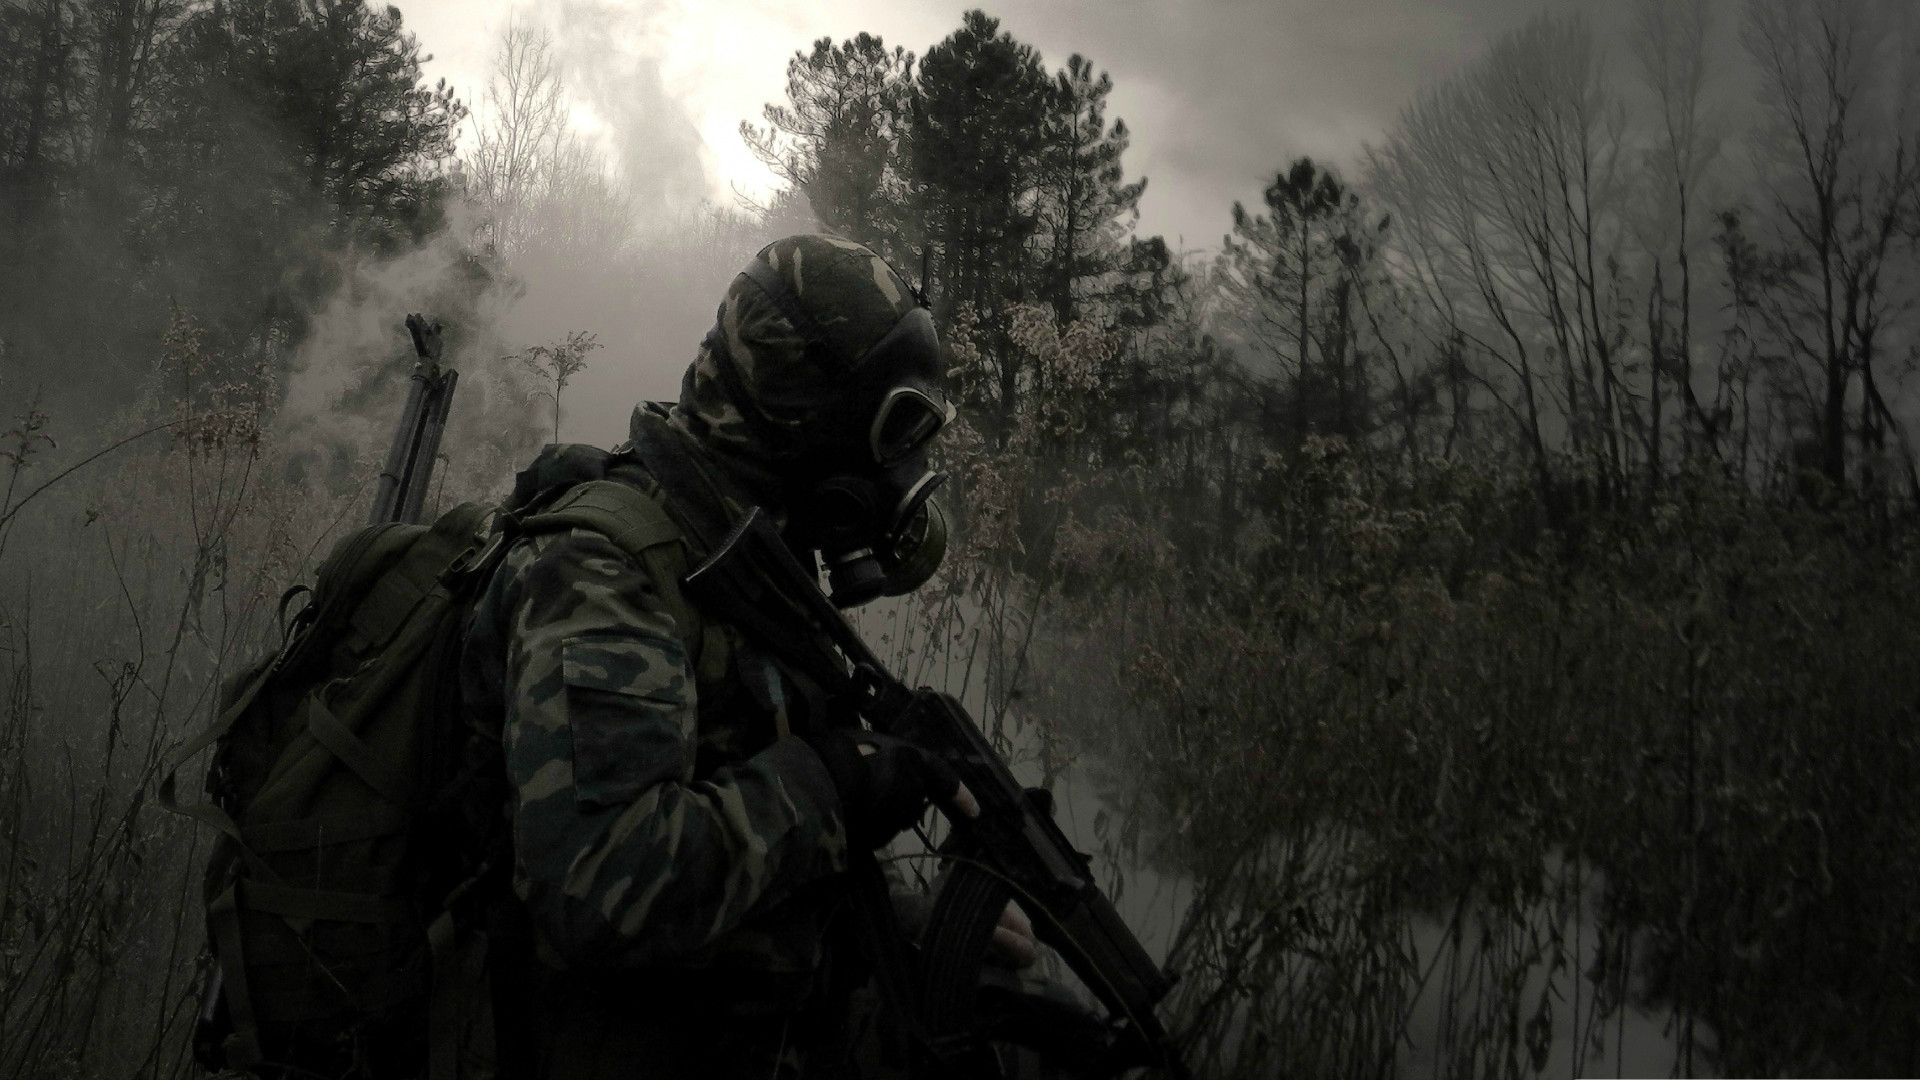 Stalker Shadow Of Chernobyl Wallpaper Hd 72 Pictures